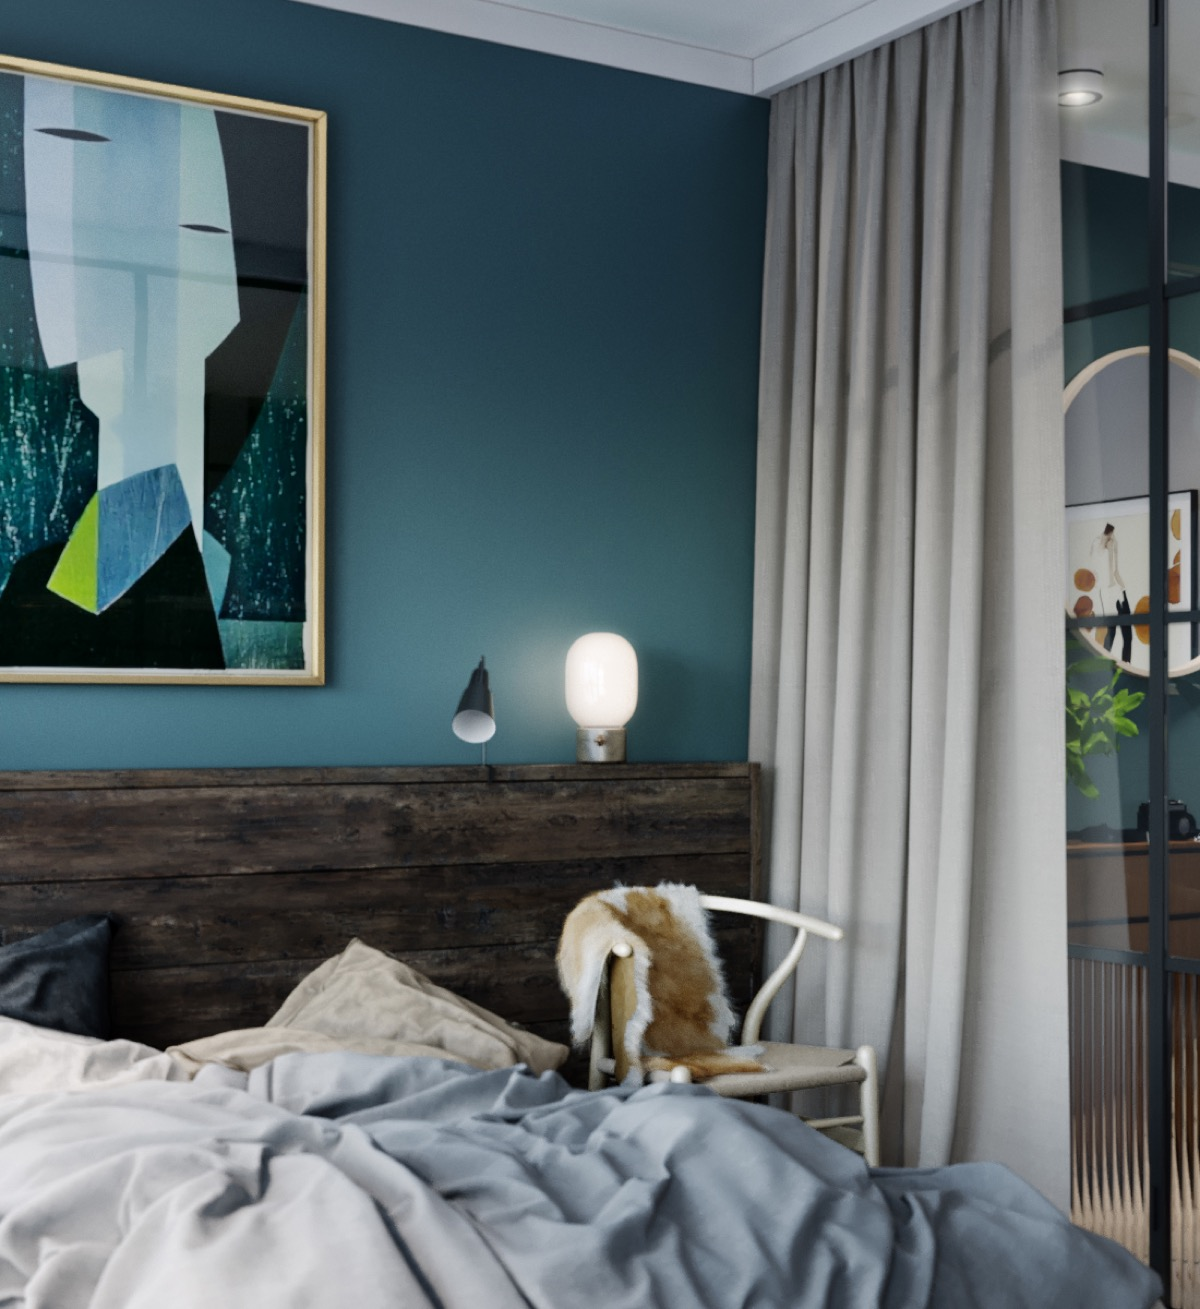 Green Accent Wall Home Designing 4 Studios That Make Beautiful Use Of